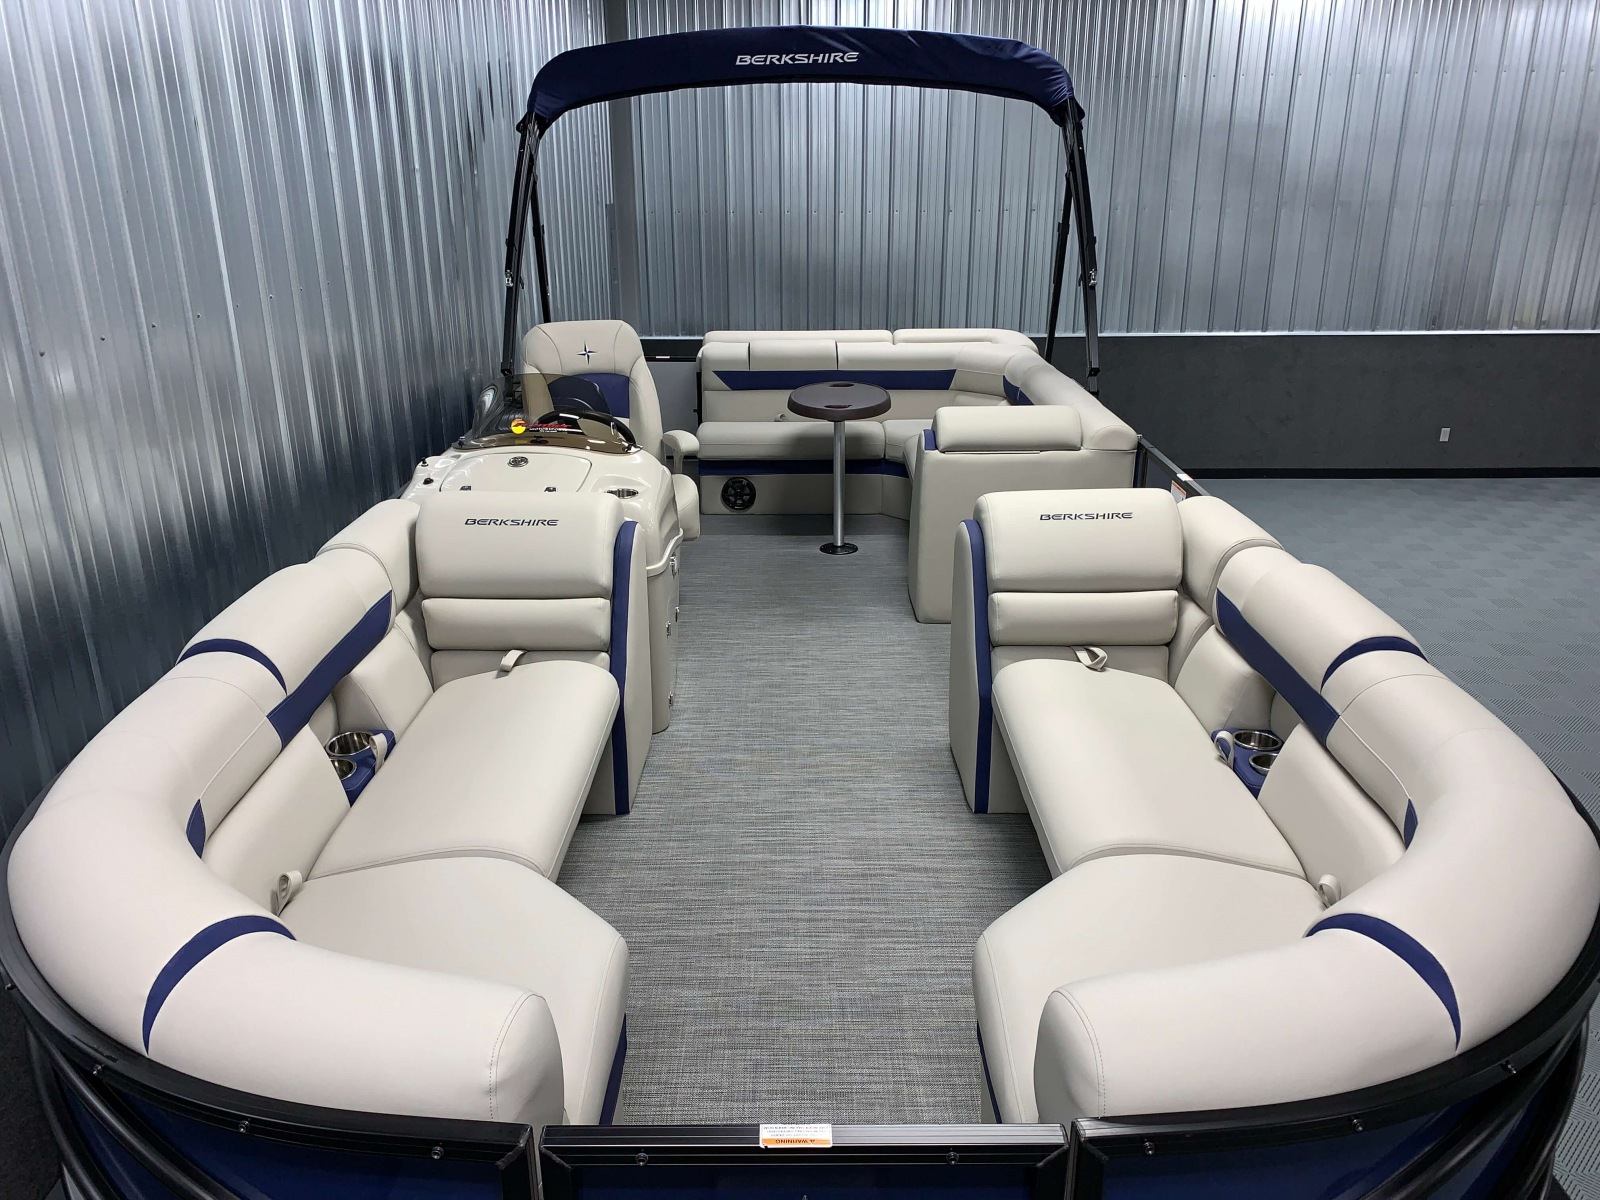 2020-Berkshire-23CL-STS-Tritoon-Boat-Interior-Seating-Layout-1